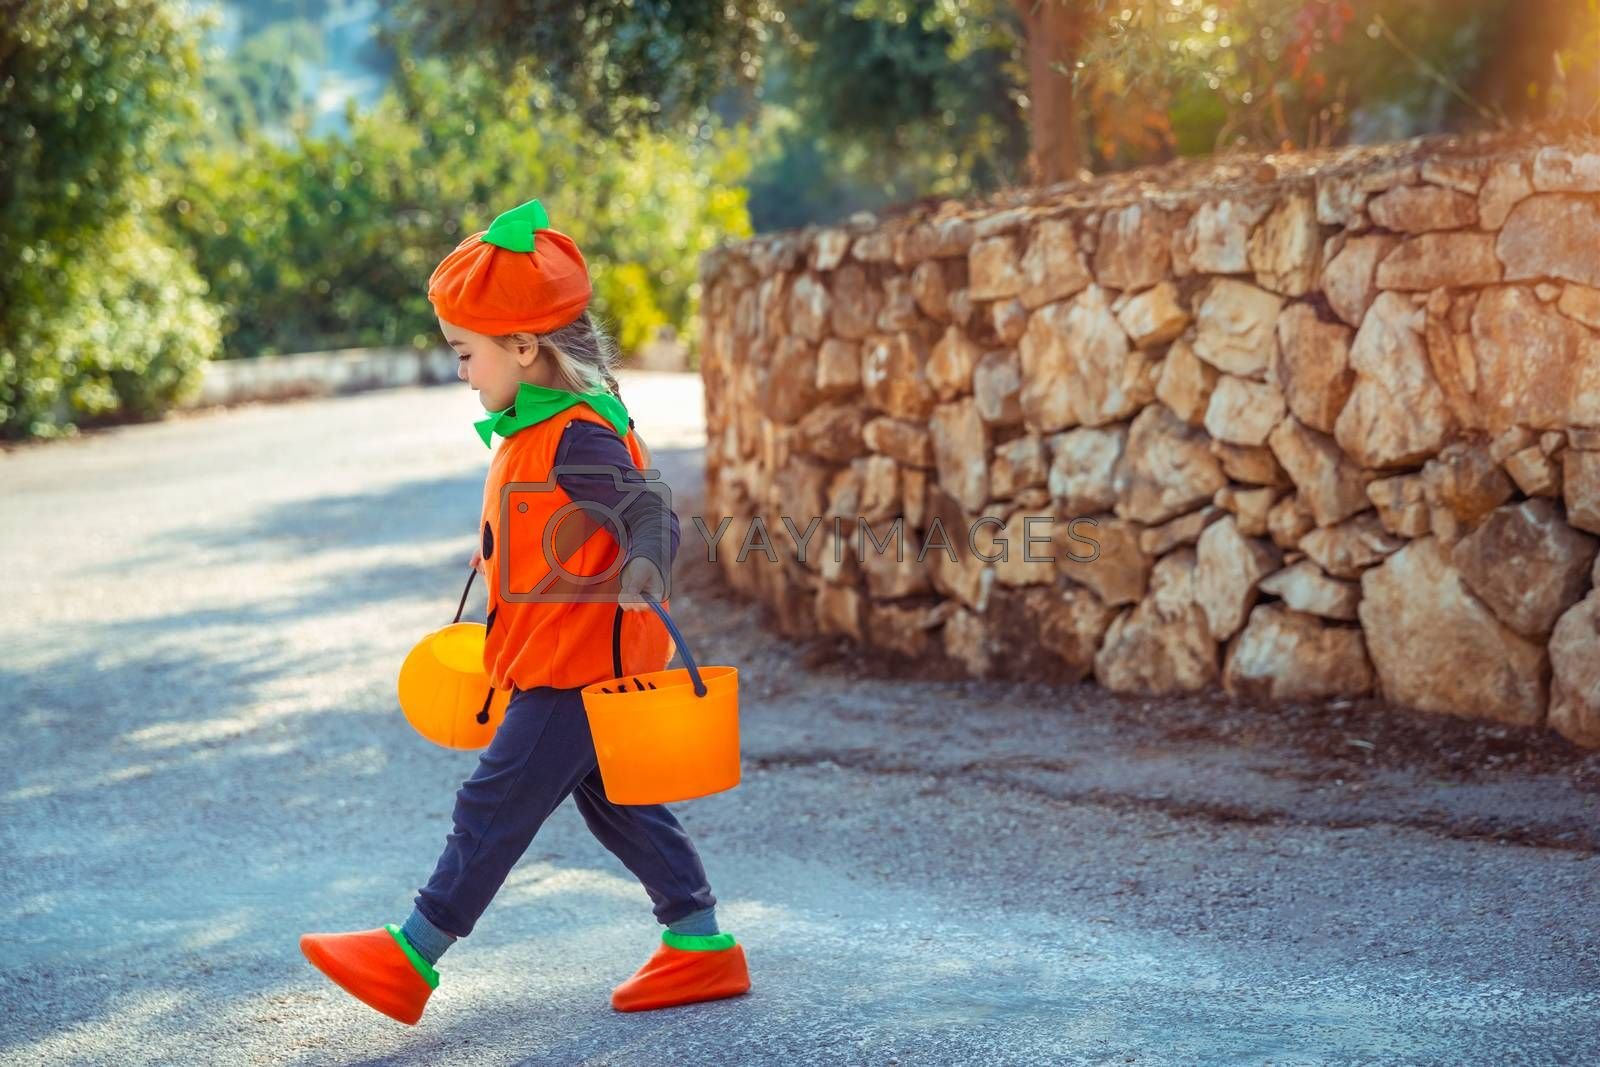 Happy Little Baby Dressed in Pumpkin Character Outfit On The Way to Collect Candies from the Neighbors. Trick or Treat. Kids Enjoying Happy Autumn Holiday.